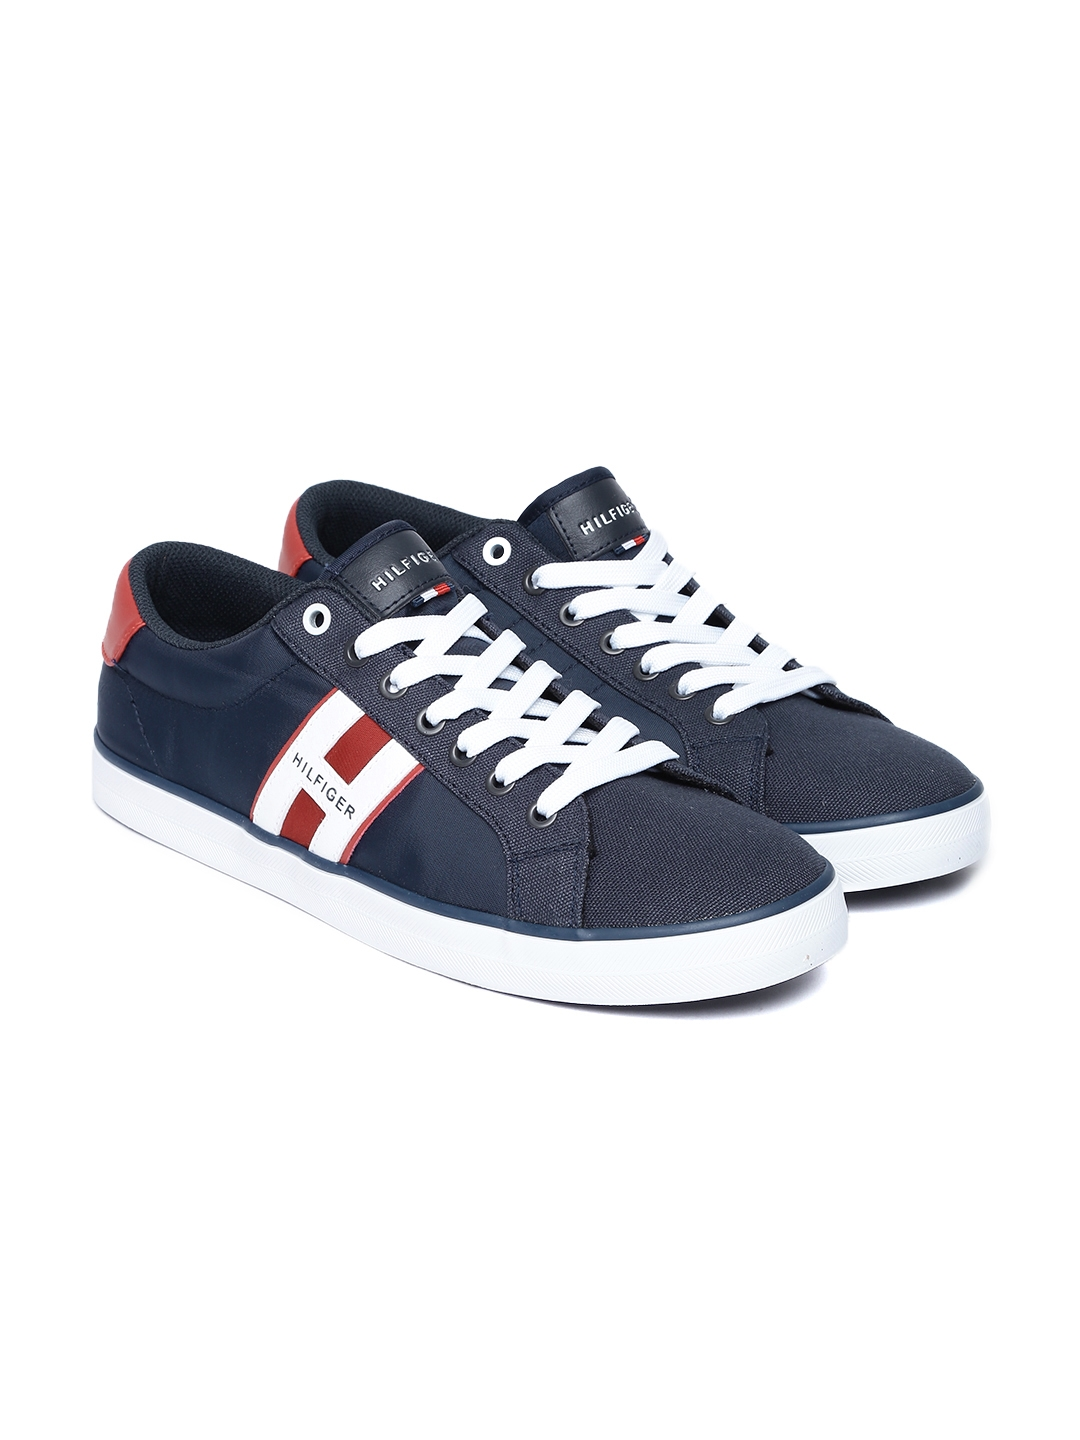 7961dc49439335 Buy Tommy Hilfiger Men Navy Blue Sneakers - Casual Shoes for Men ...